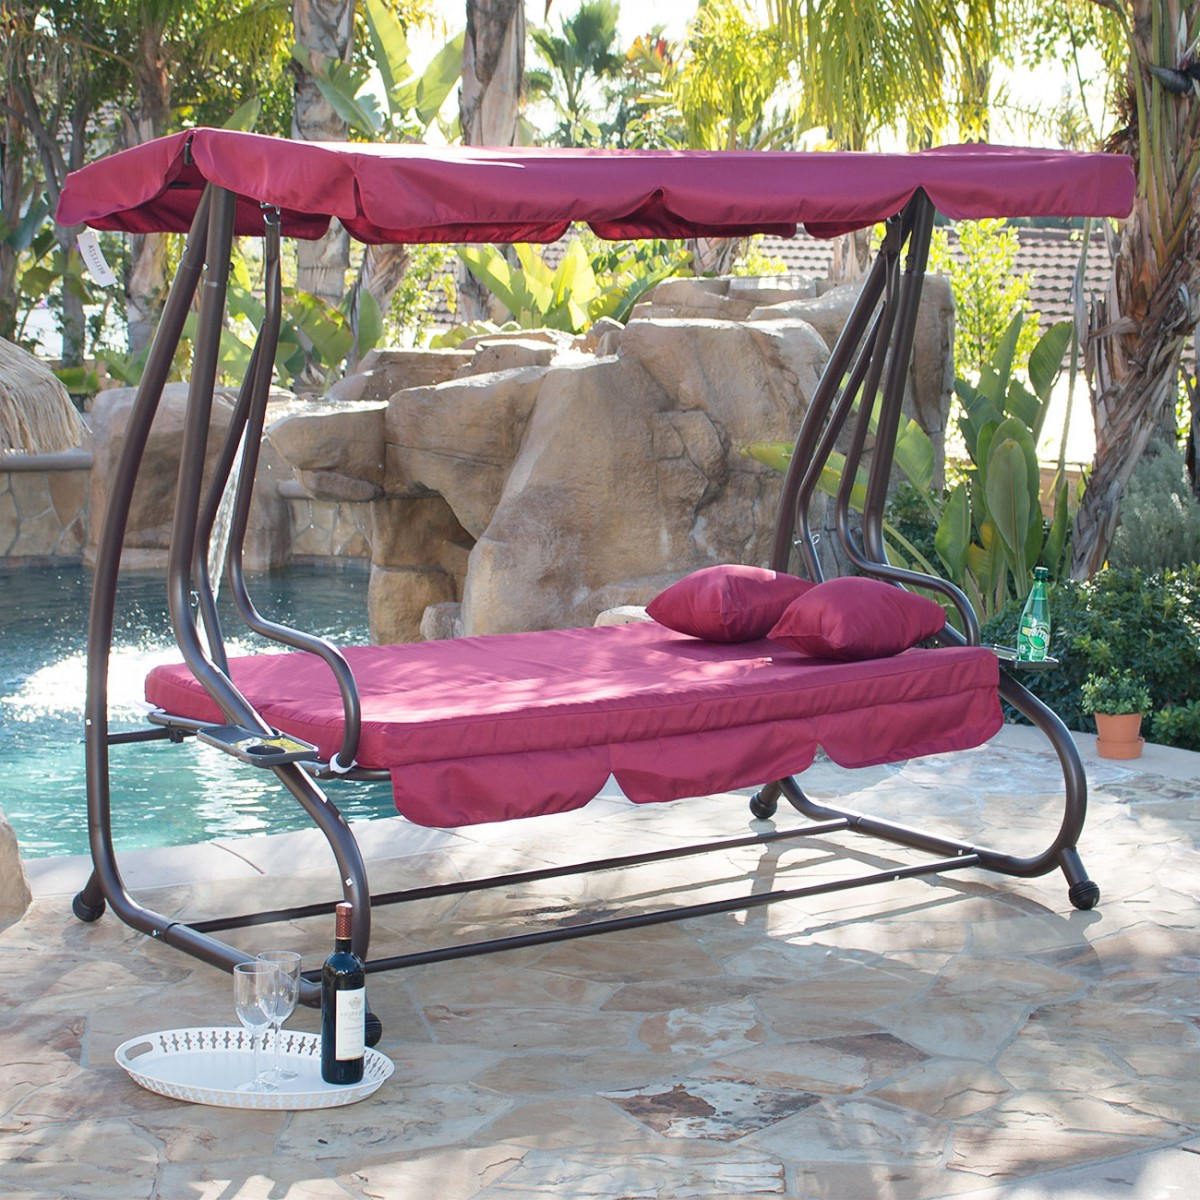 Belleze Outdoor Canopy Porch Swing/bed Hammock Tilt Canopy With Steel Frame  (Burgundy) Intended For Fashionable Porch Swings With Canopy (Gallery 7 of 30)